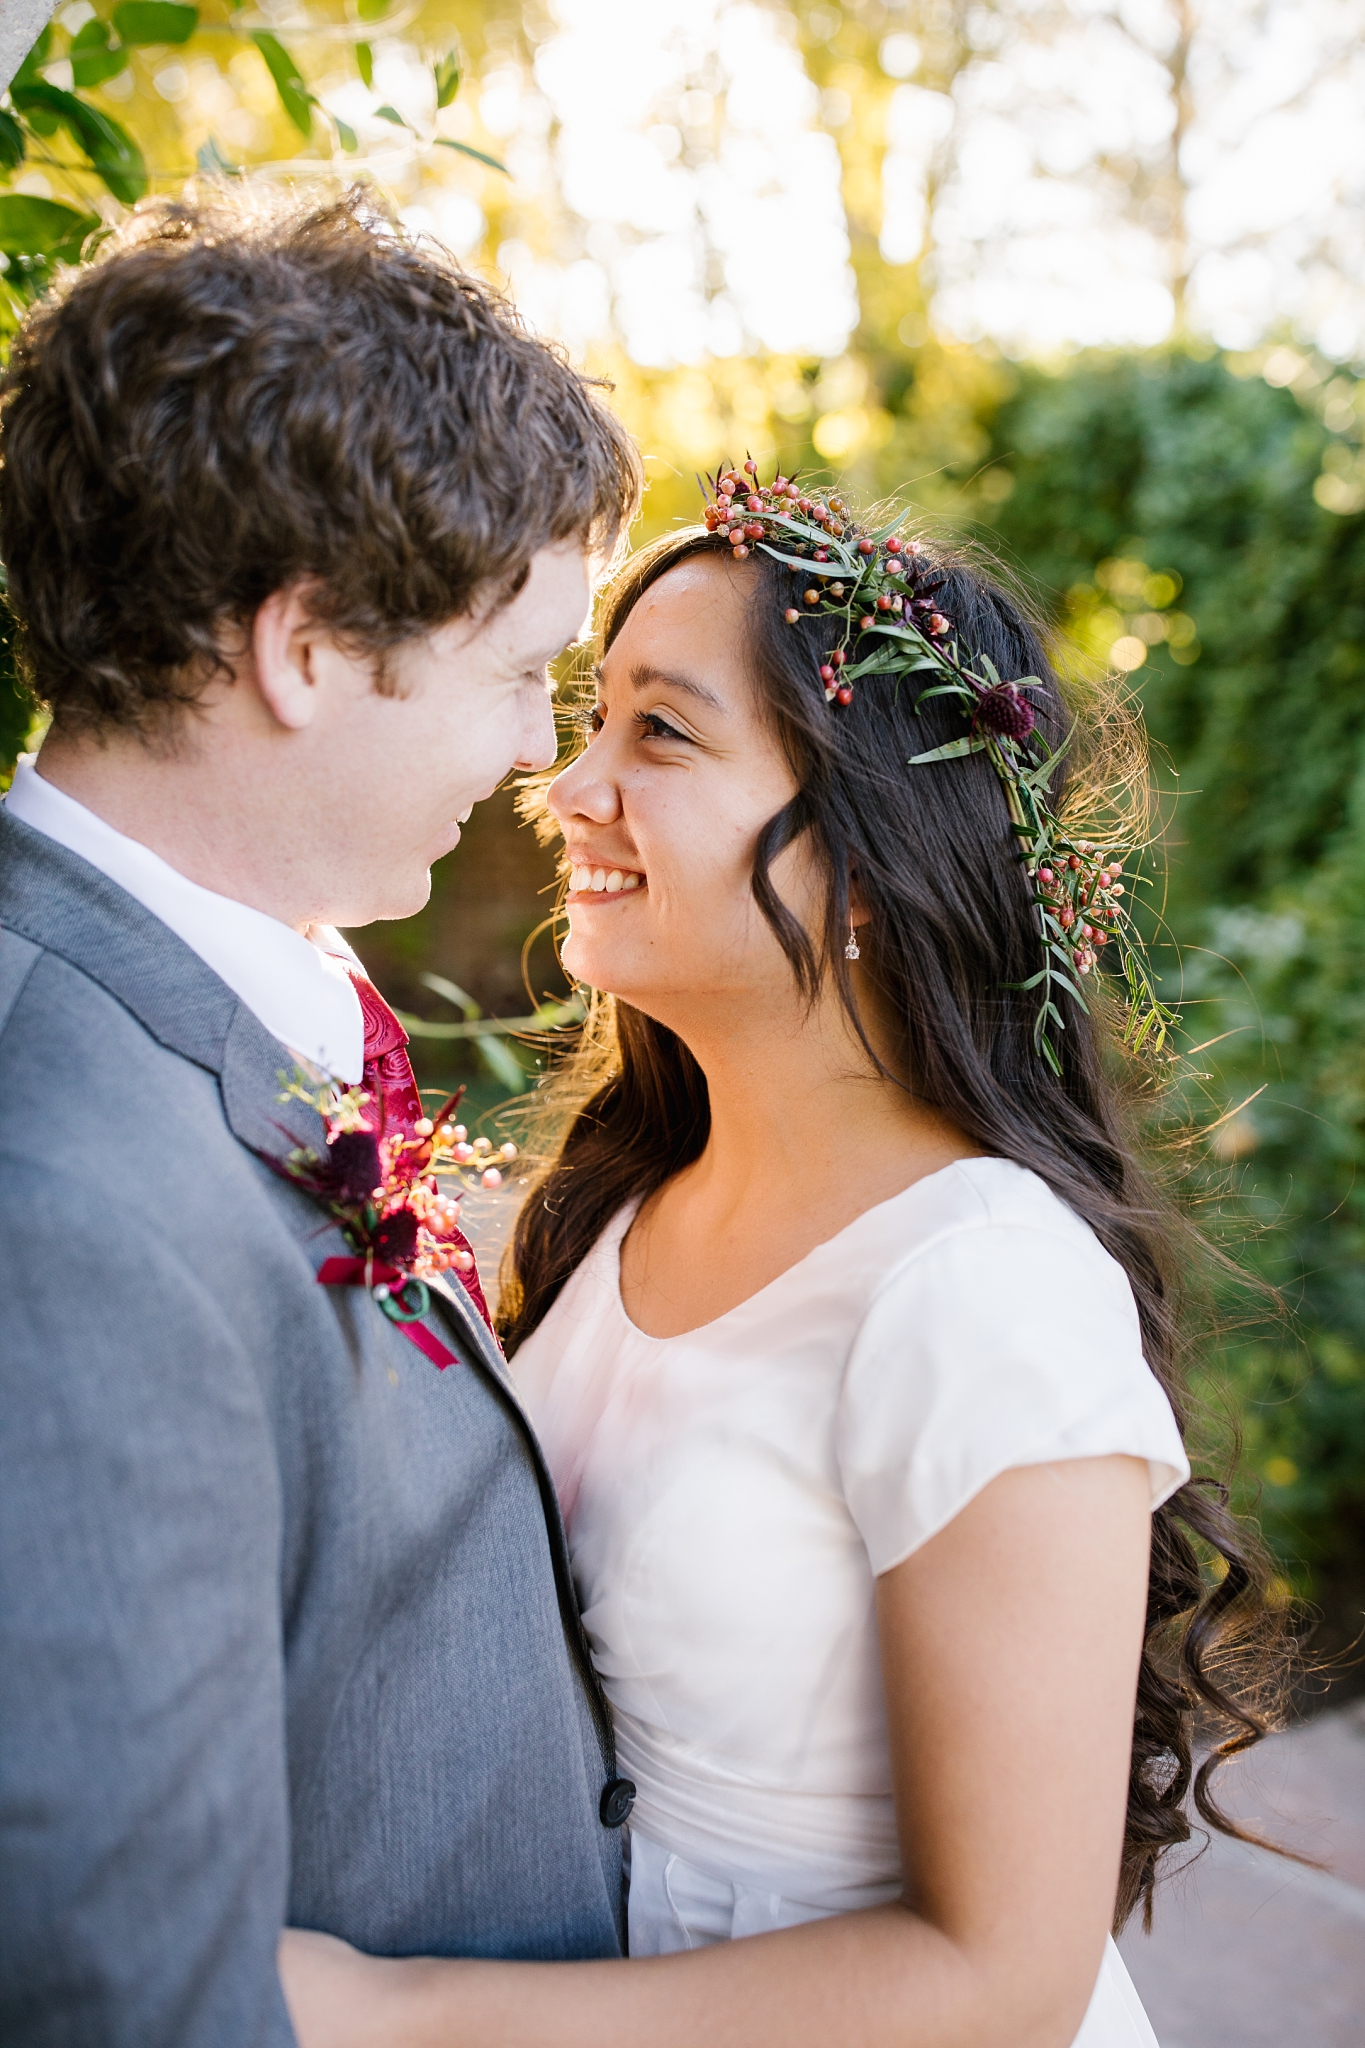 JB-Bridals-3_Lizzie-B-Imagery-Utah-Wedding-Photographer-Thanksgiving-Point-Ashton-Gardens-Lehi-Utah.jpg